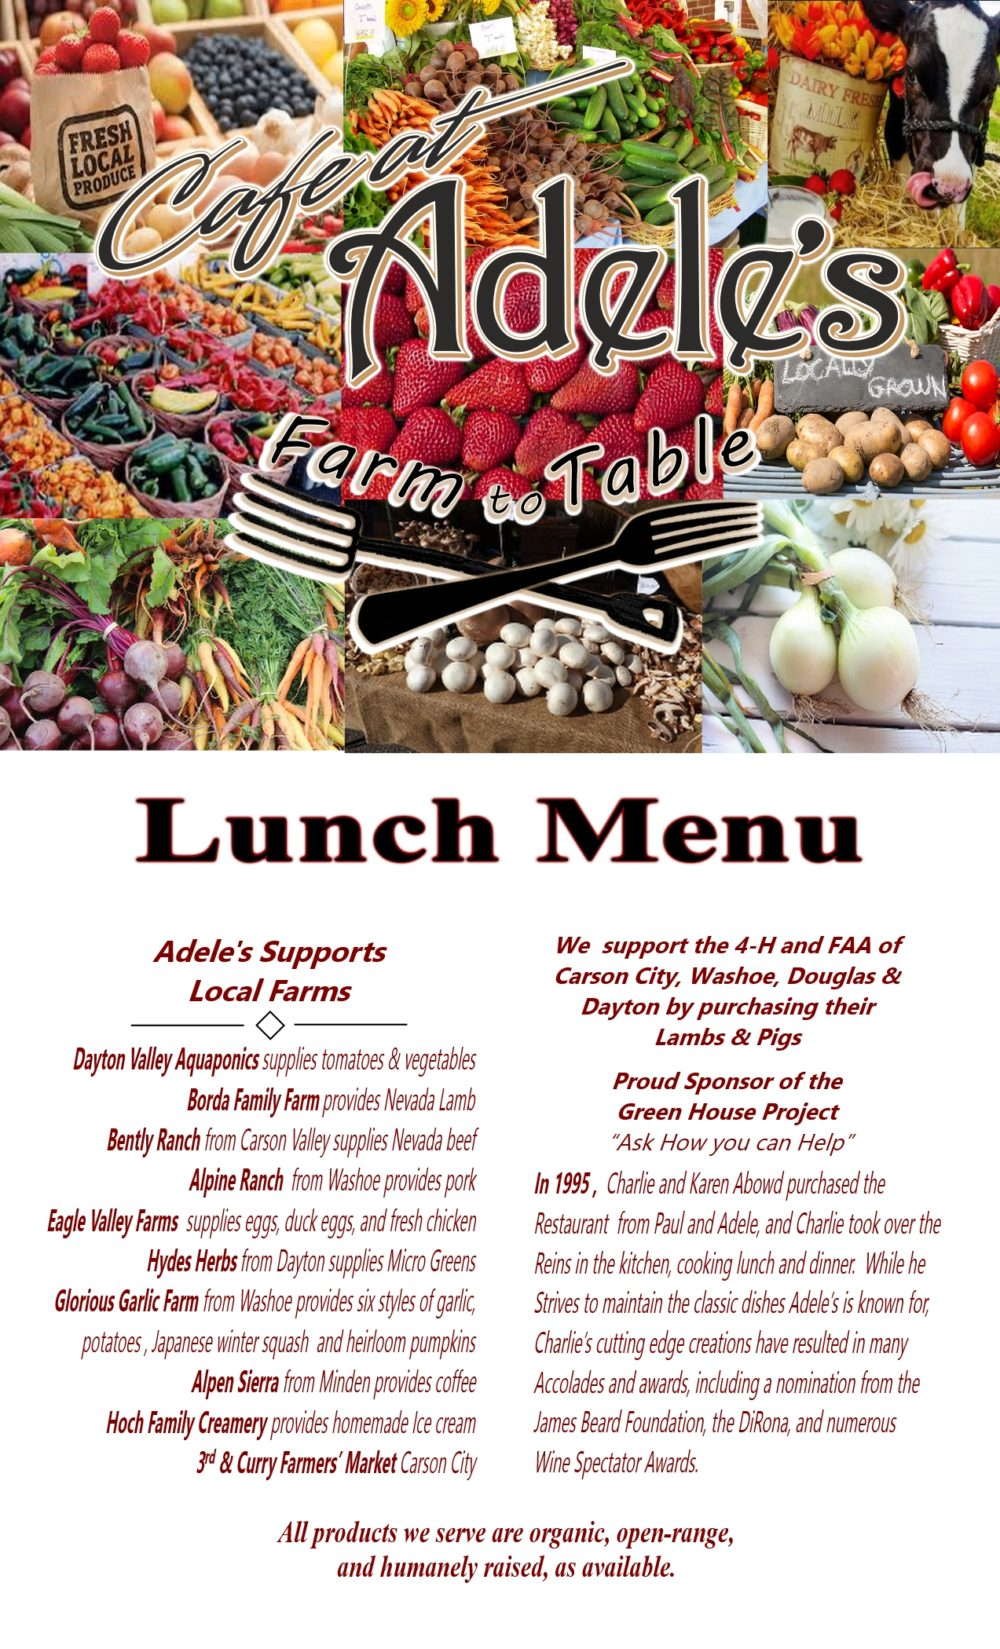 Lunch Menu Cover Page v3 1-29-18